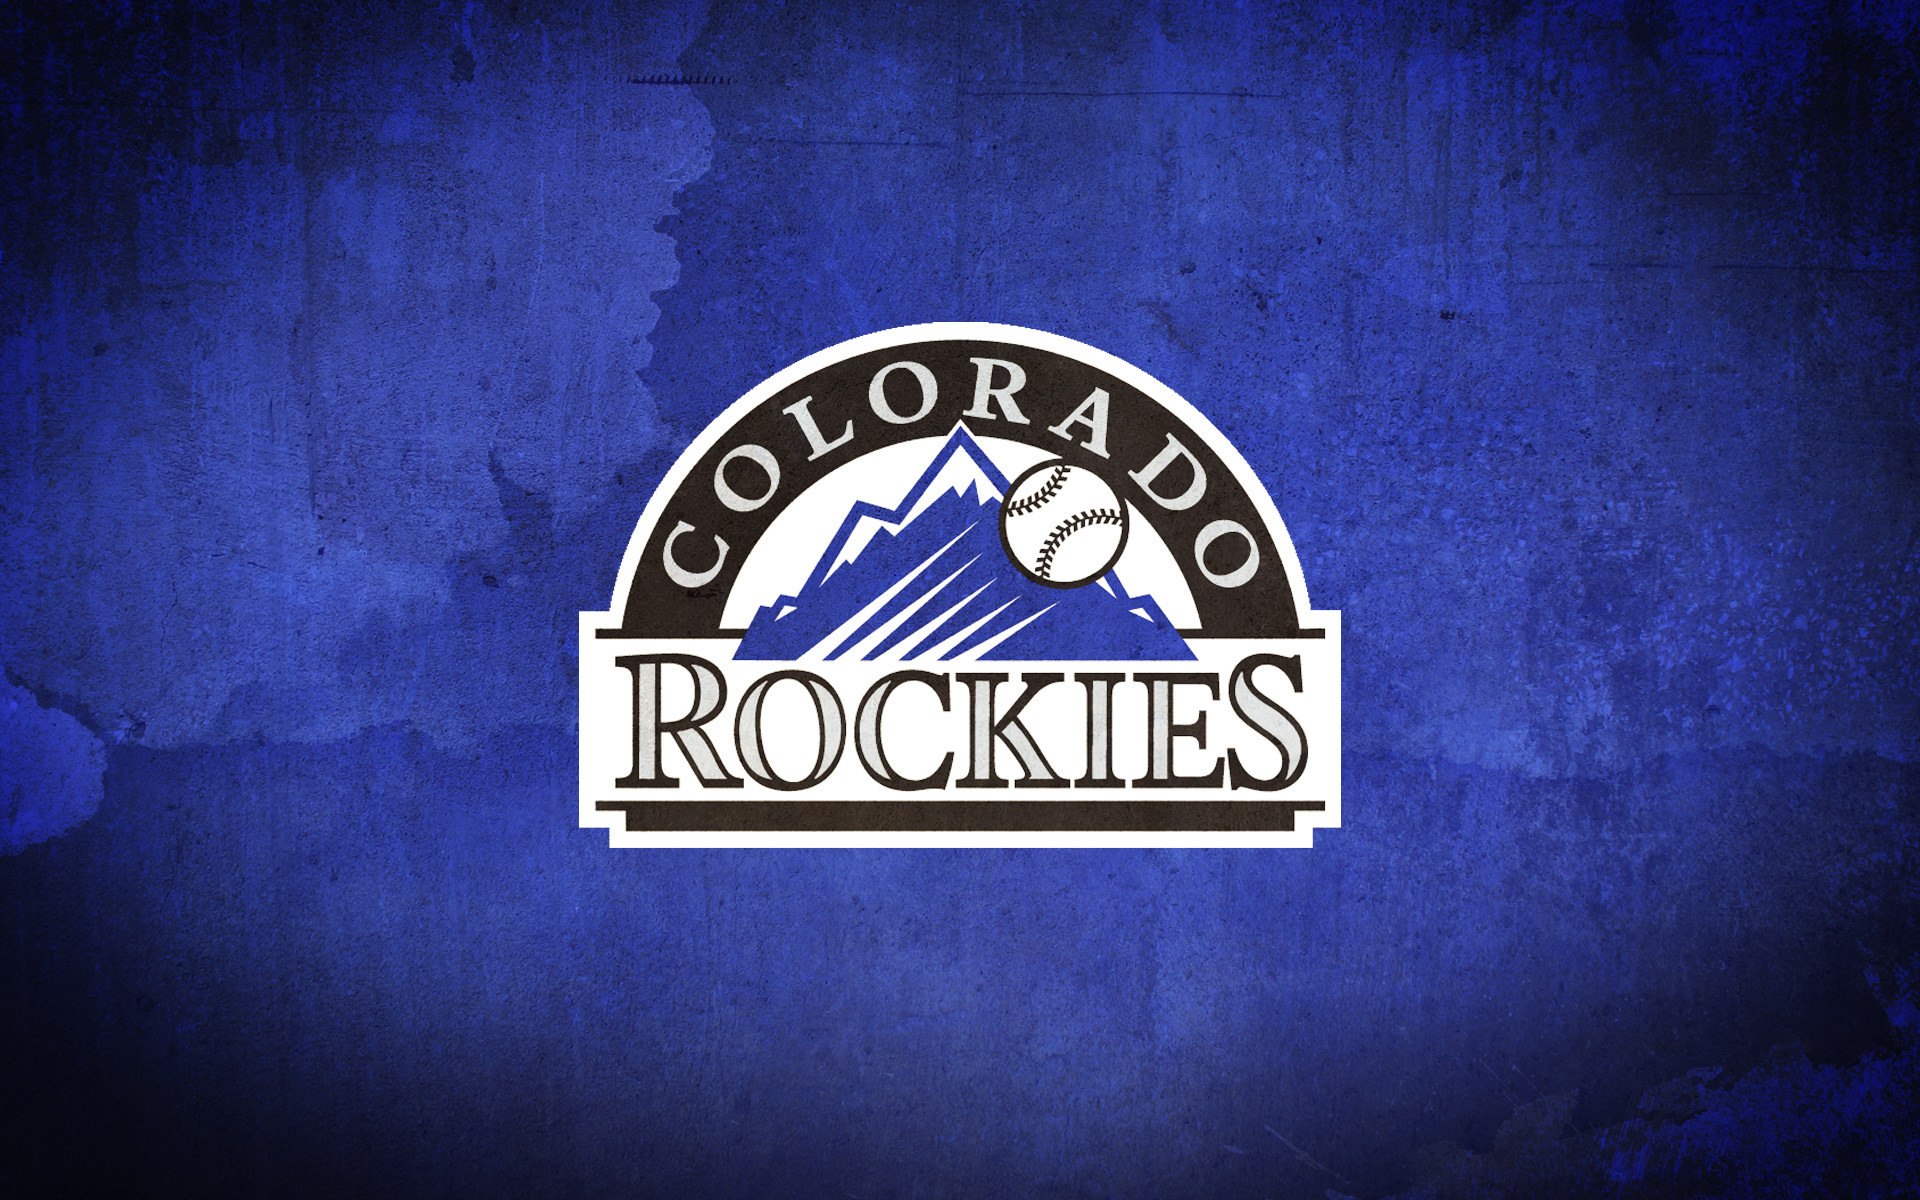 Related Wallpapers from NY Giants Wallpaper. Colorado Rockies Wallpaper